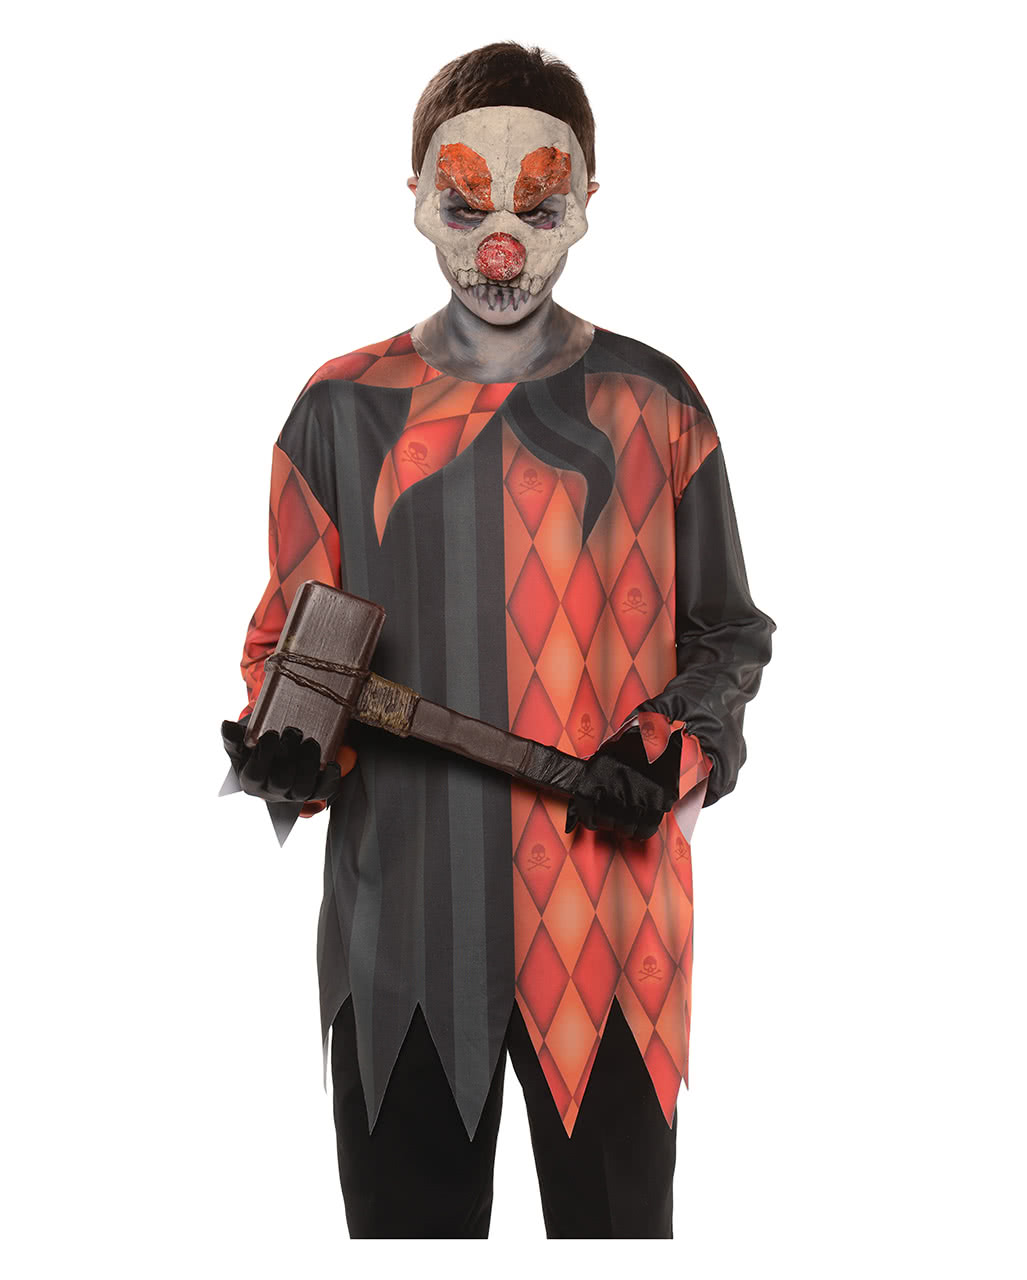 Wicked Clown Kids Shirt For Halloween costumes | horror-shop.com